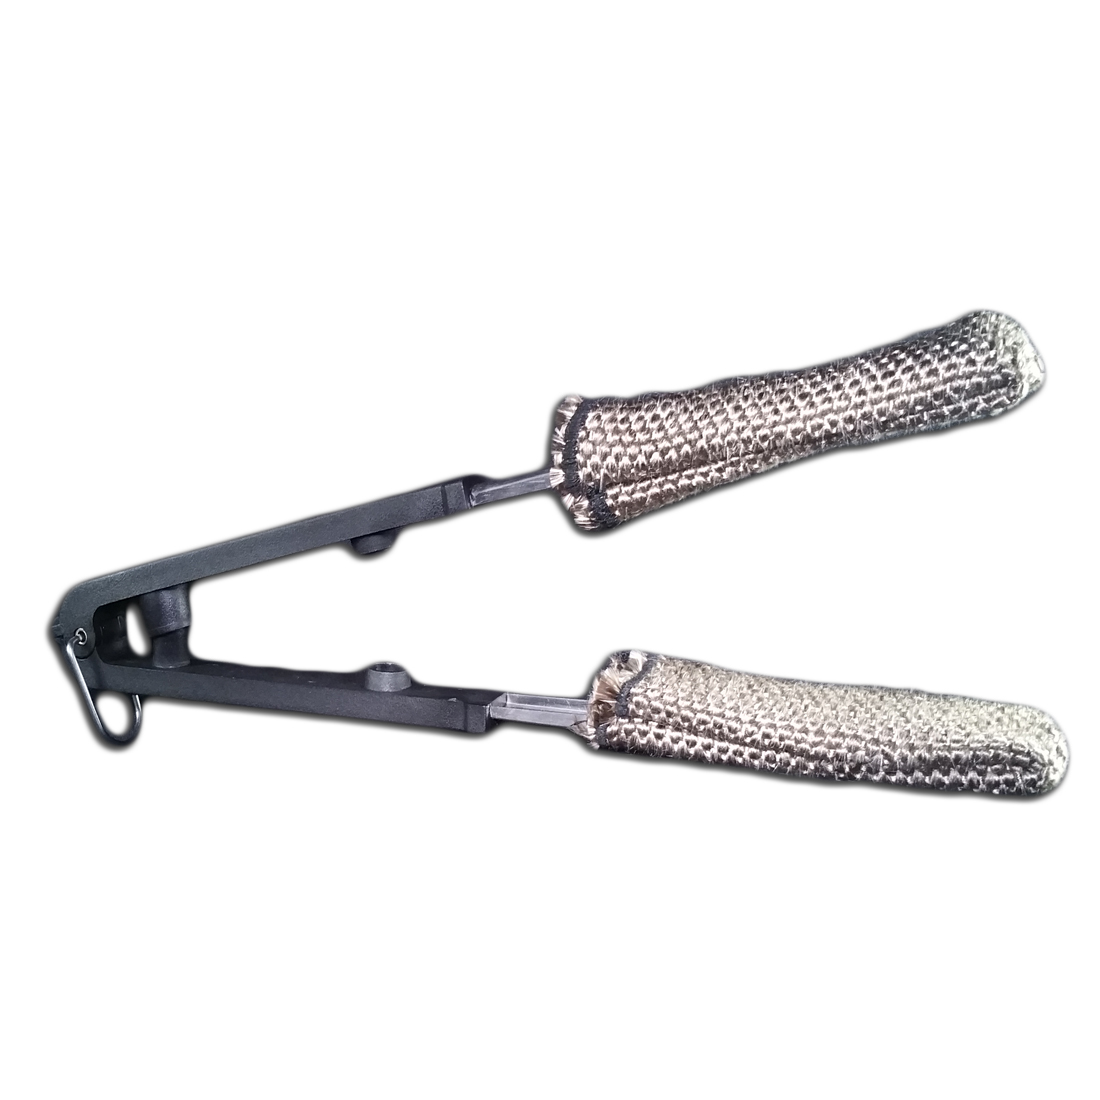 ABR Hot Tongs